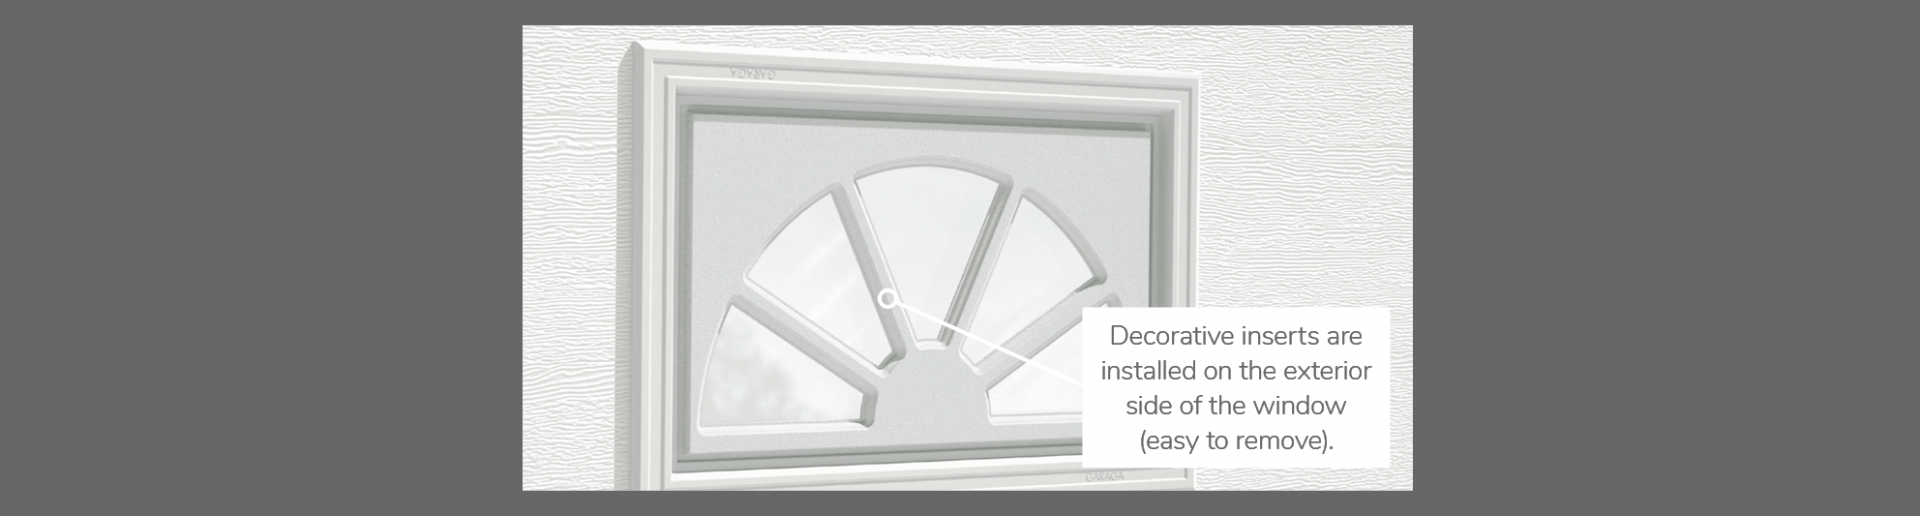 "Sherwood Decorative Insert, 21"" x 13"", available for door R-16"